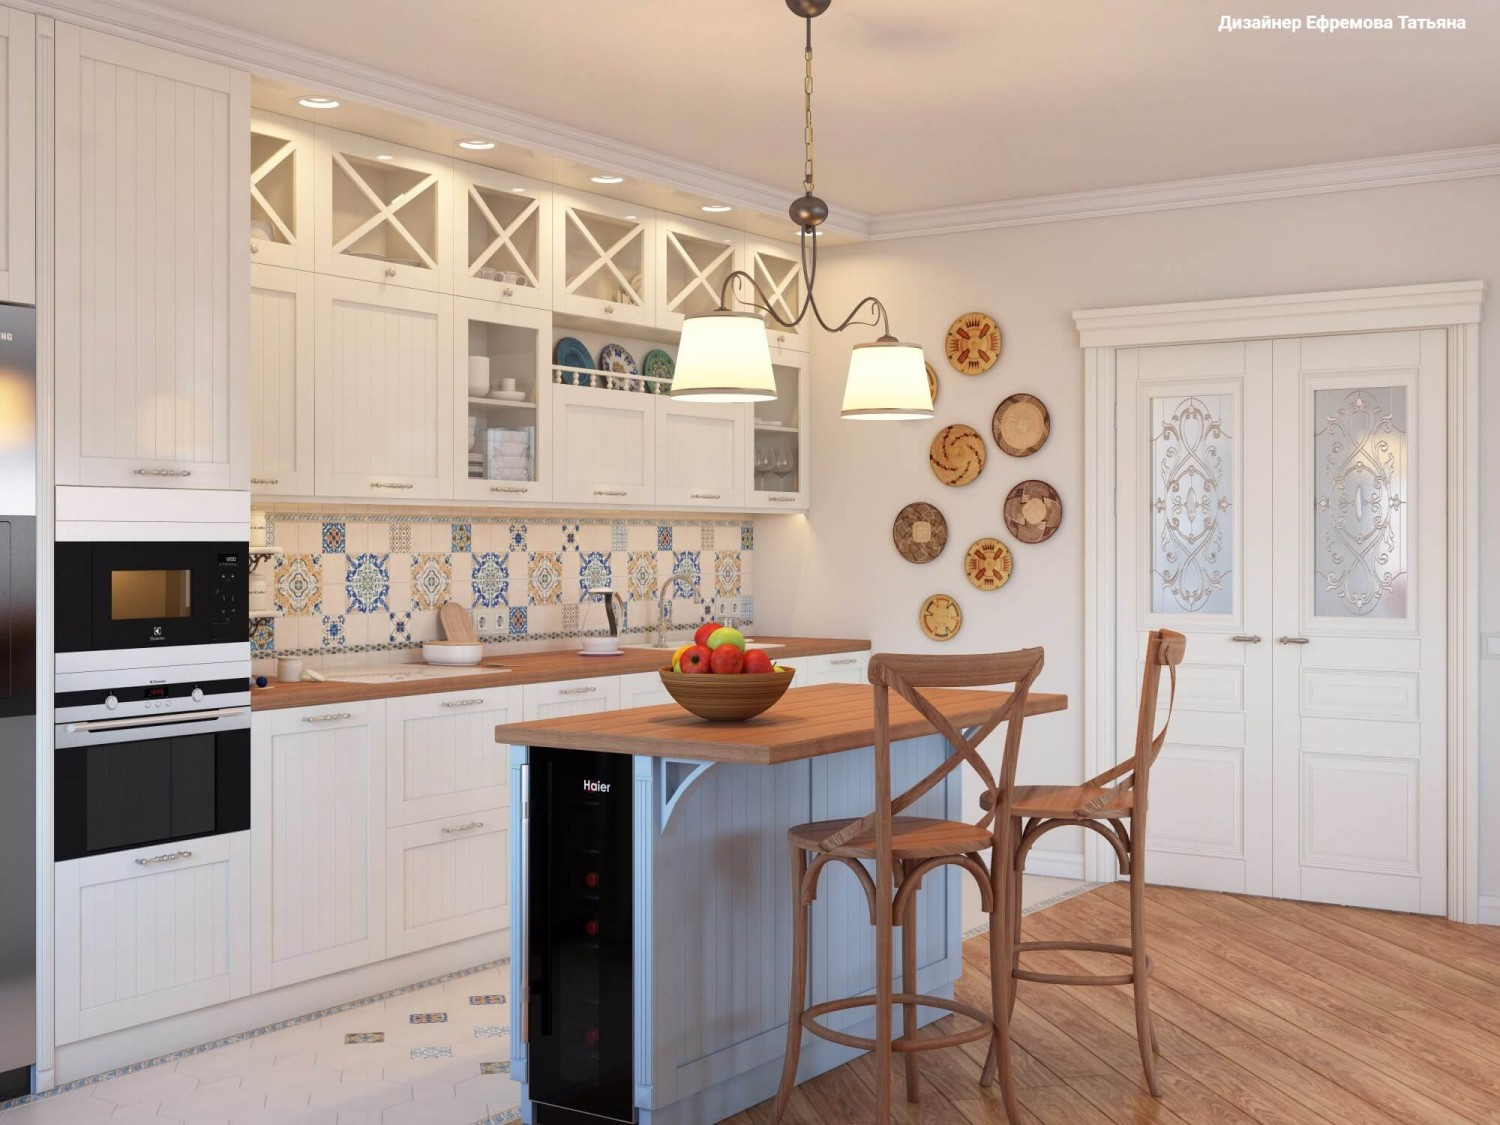 Mediterranean Style Kitchen Interior Design Ideas with Photos. Neat white arrangement with wooden floor and colorful tiled backsplash